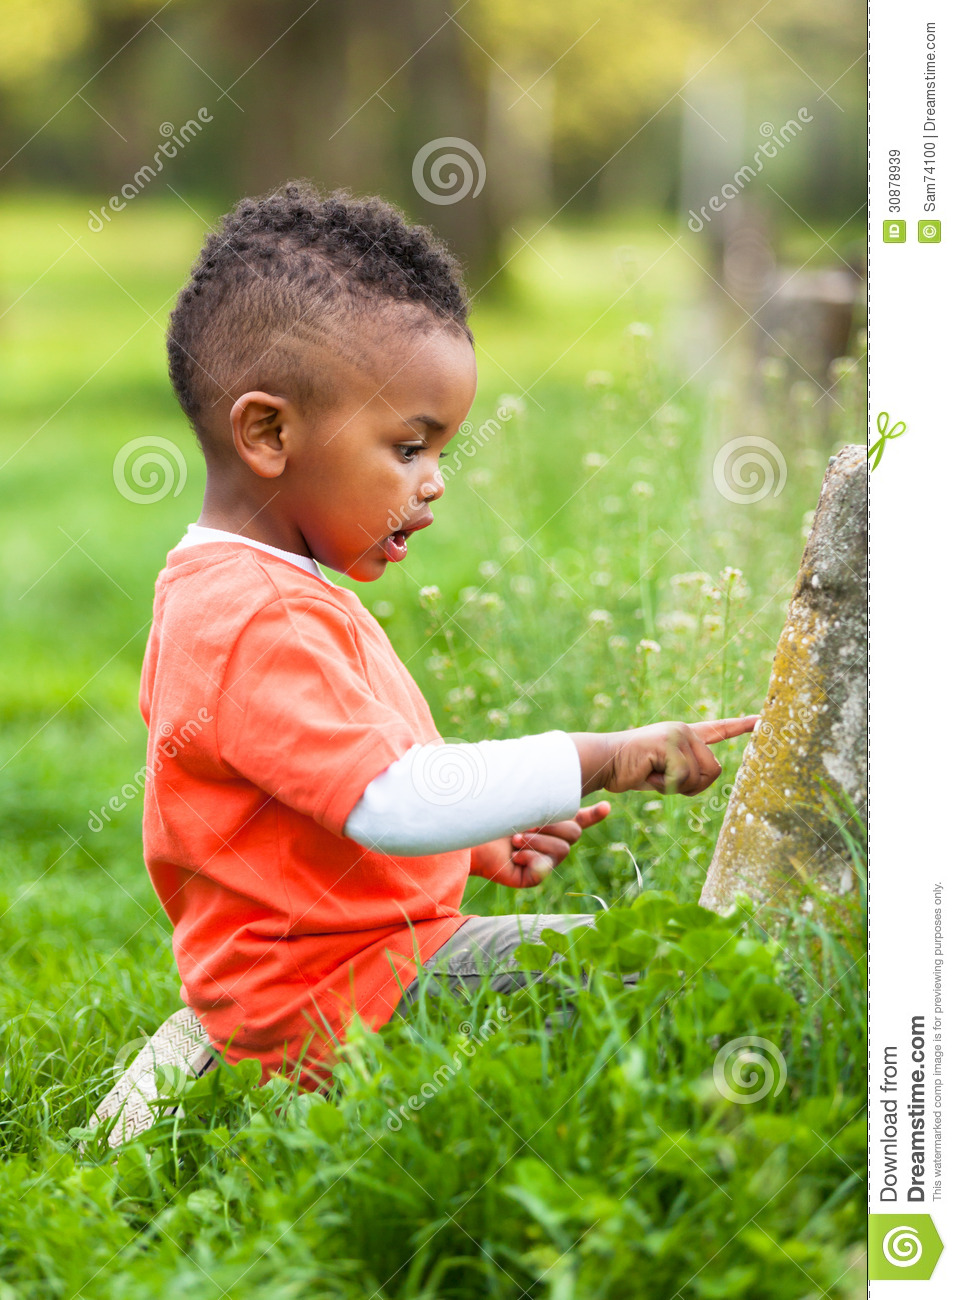 Outdoor Portrait Of A Cute Young Little Black Boy Playing